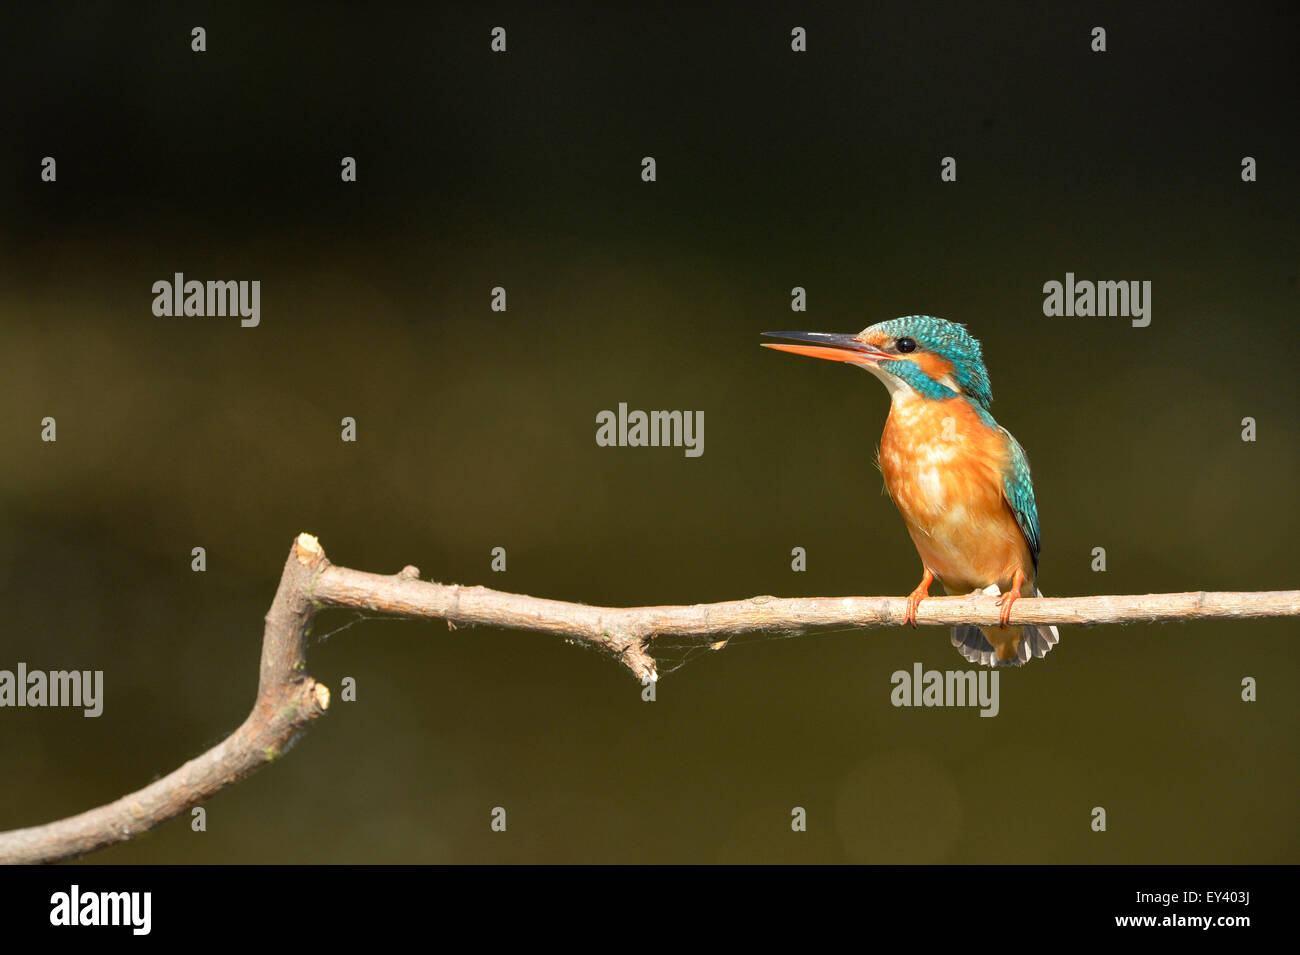 Common Kingfisher (Alcedo atthis) adult female perched on branch, Danube delta, Romania, May Stock Photo